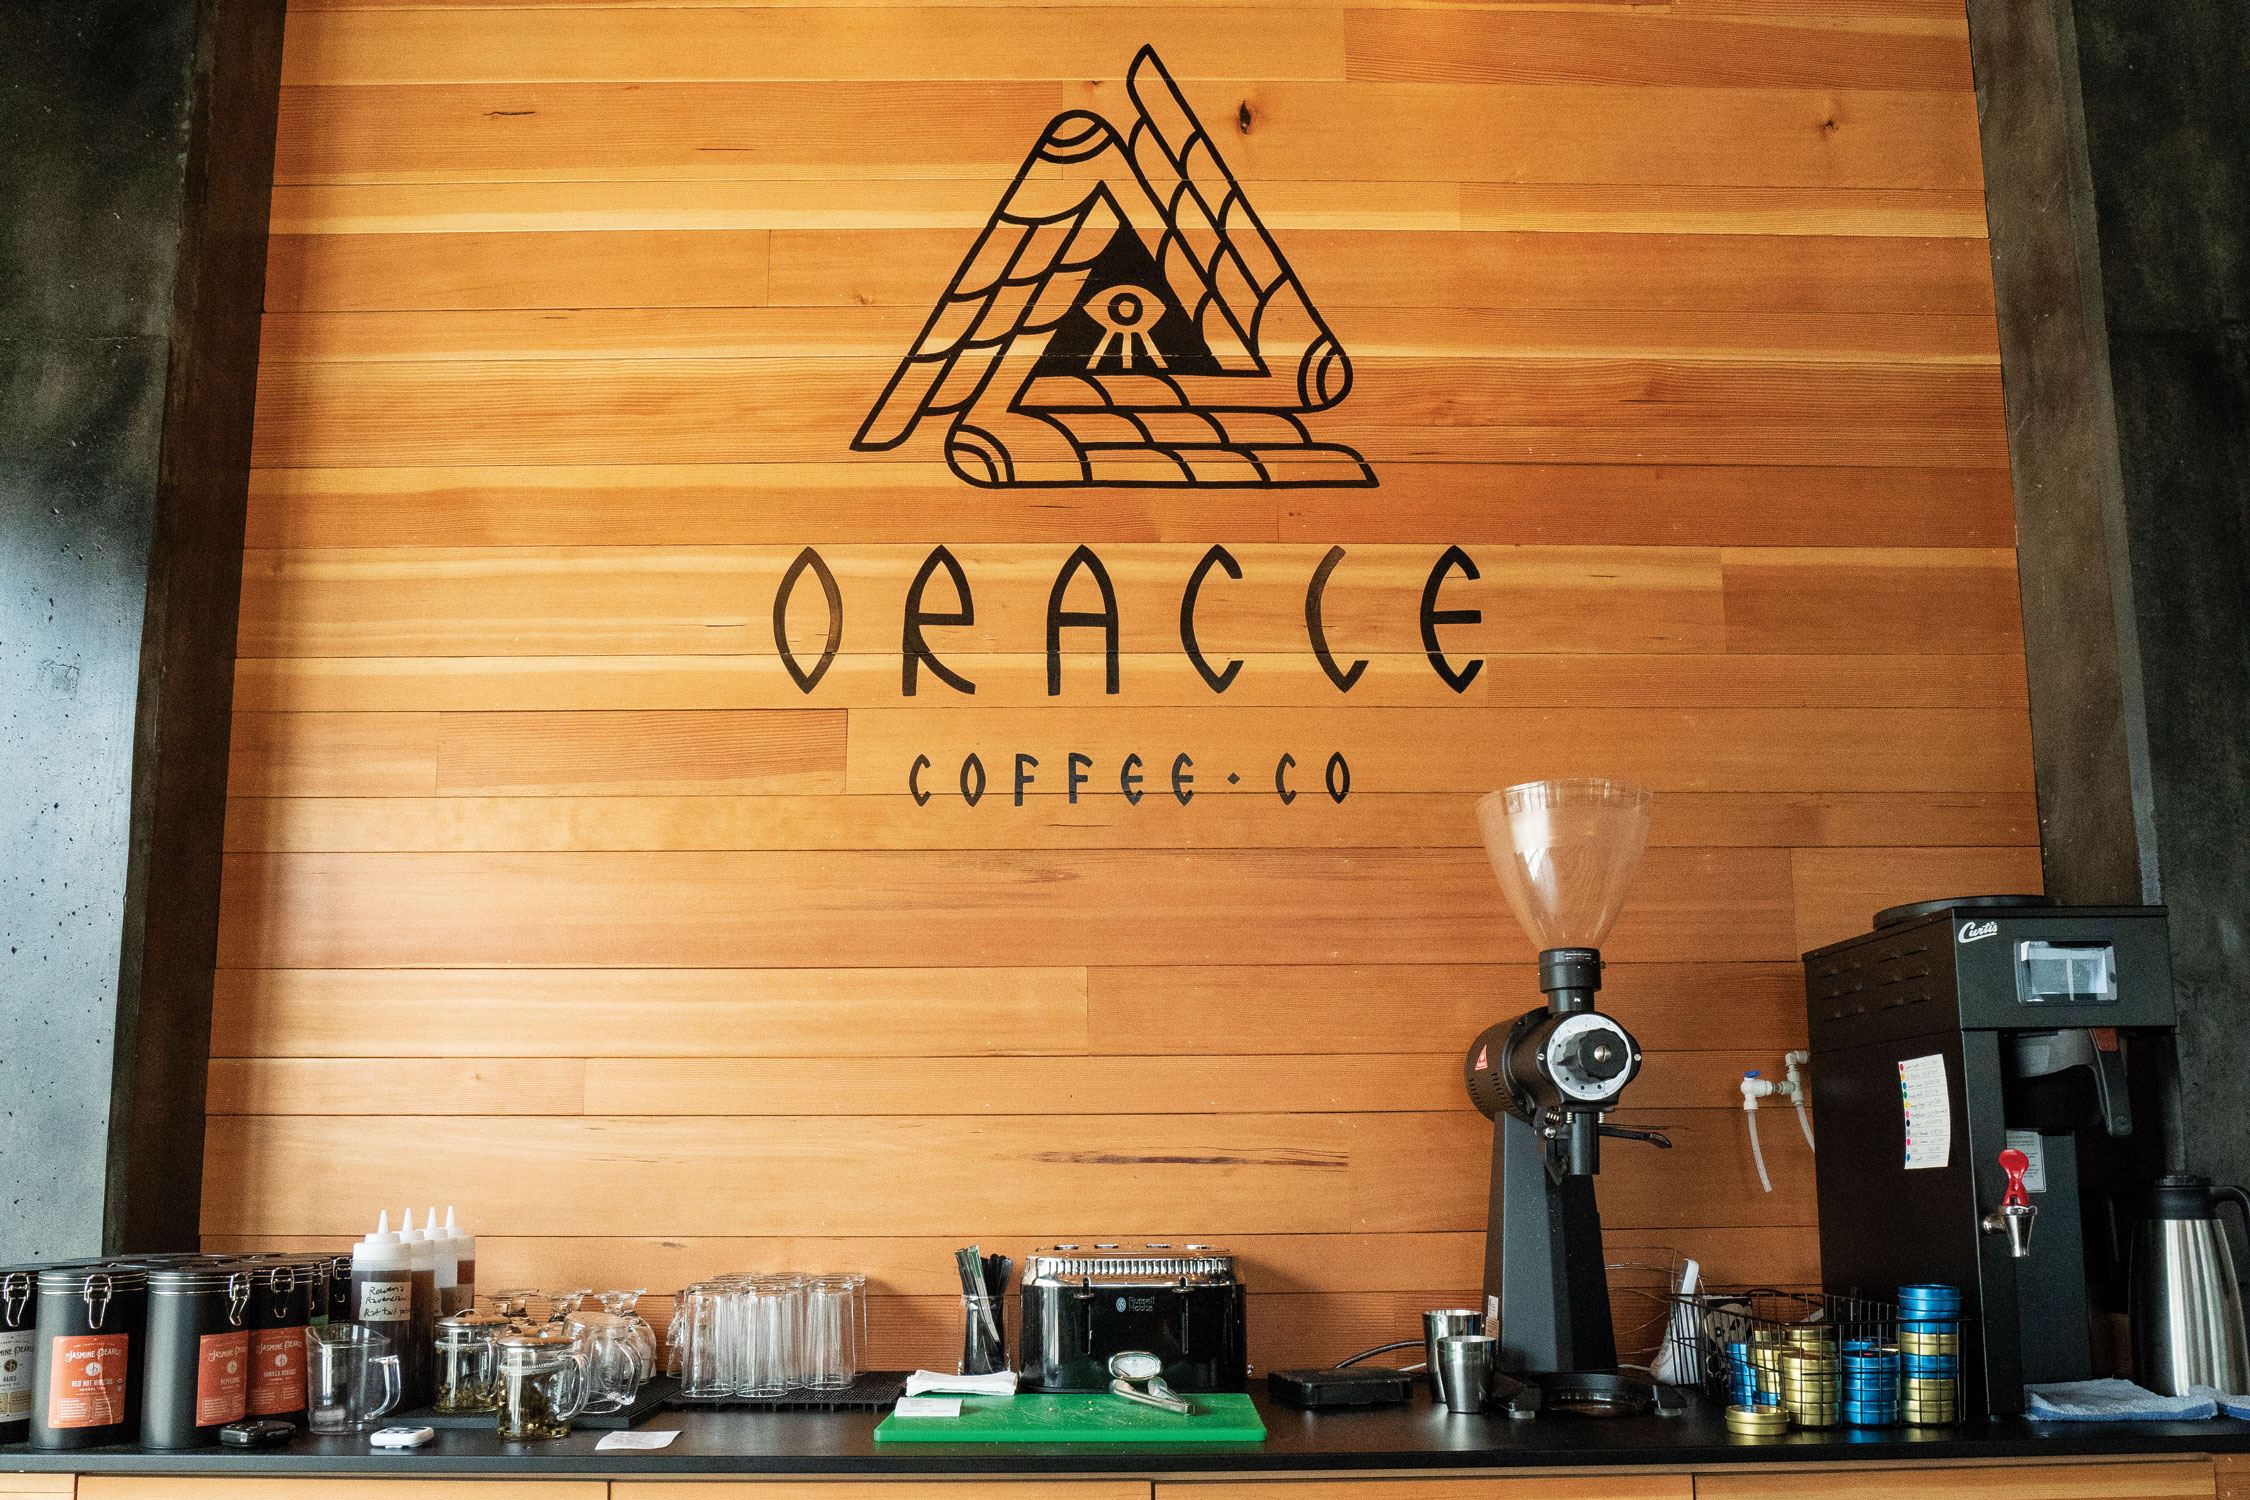 See The Future At Oracle - In an era when coffeehouses are more flash than substance, finding one that treats coffee with respect can be difficult.